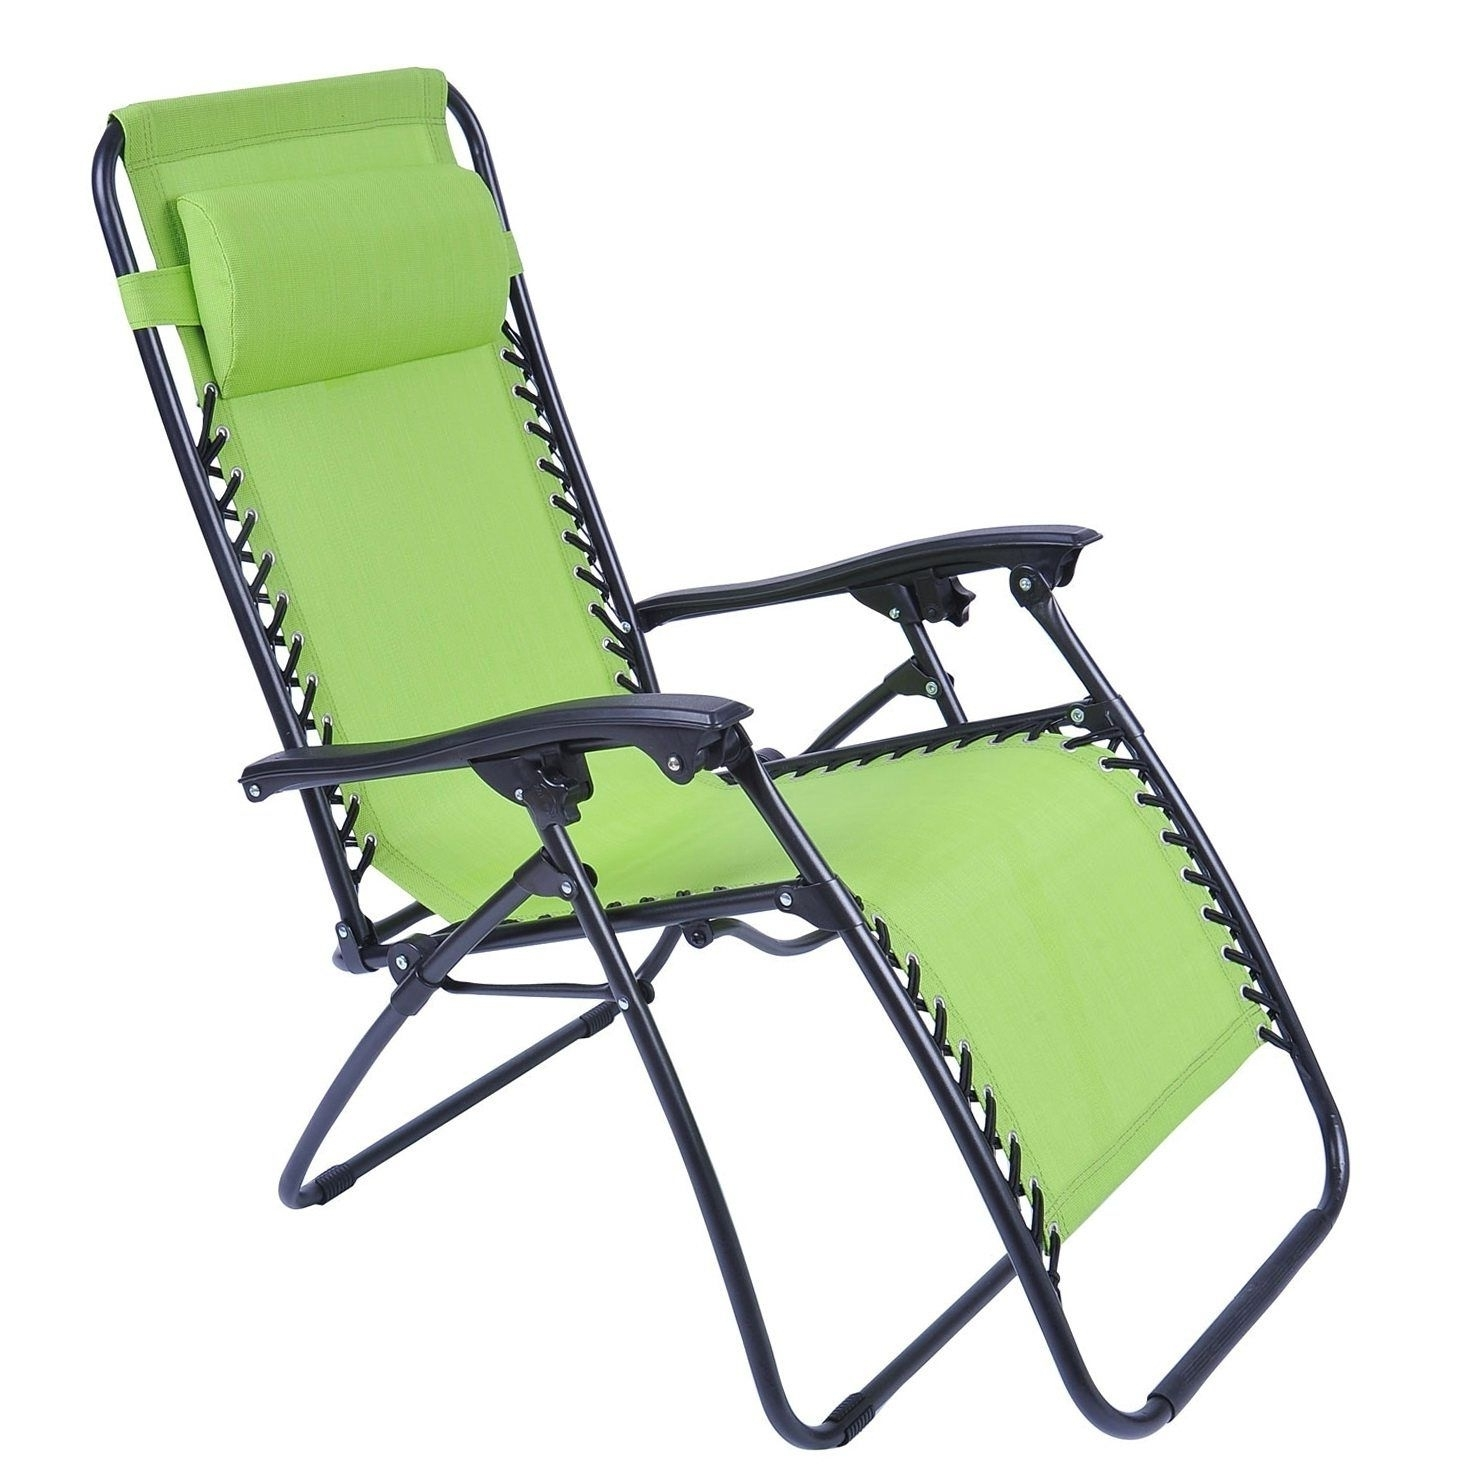 Lightweight Chaise Lounge Chairs Within Most Popular Lounge Chair Outdoor Folding Folding Chaise Lounge Chair Patio (View 9 of 15)